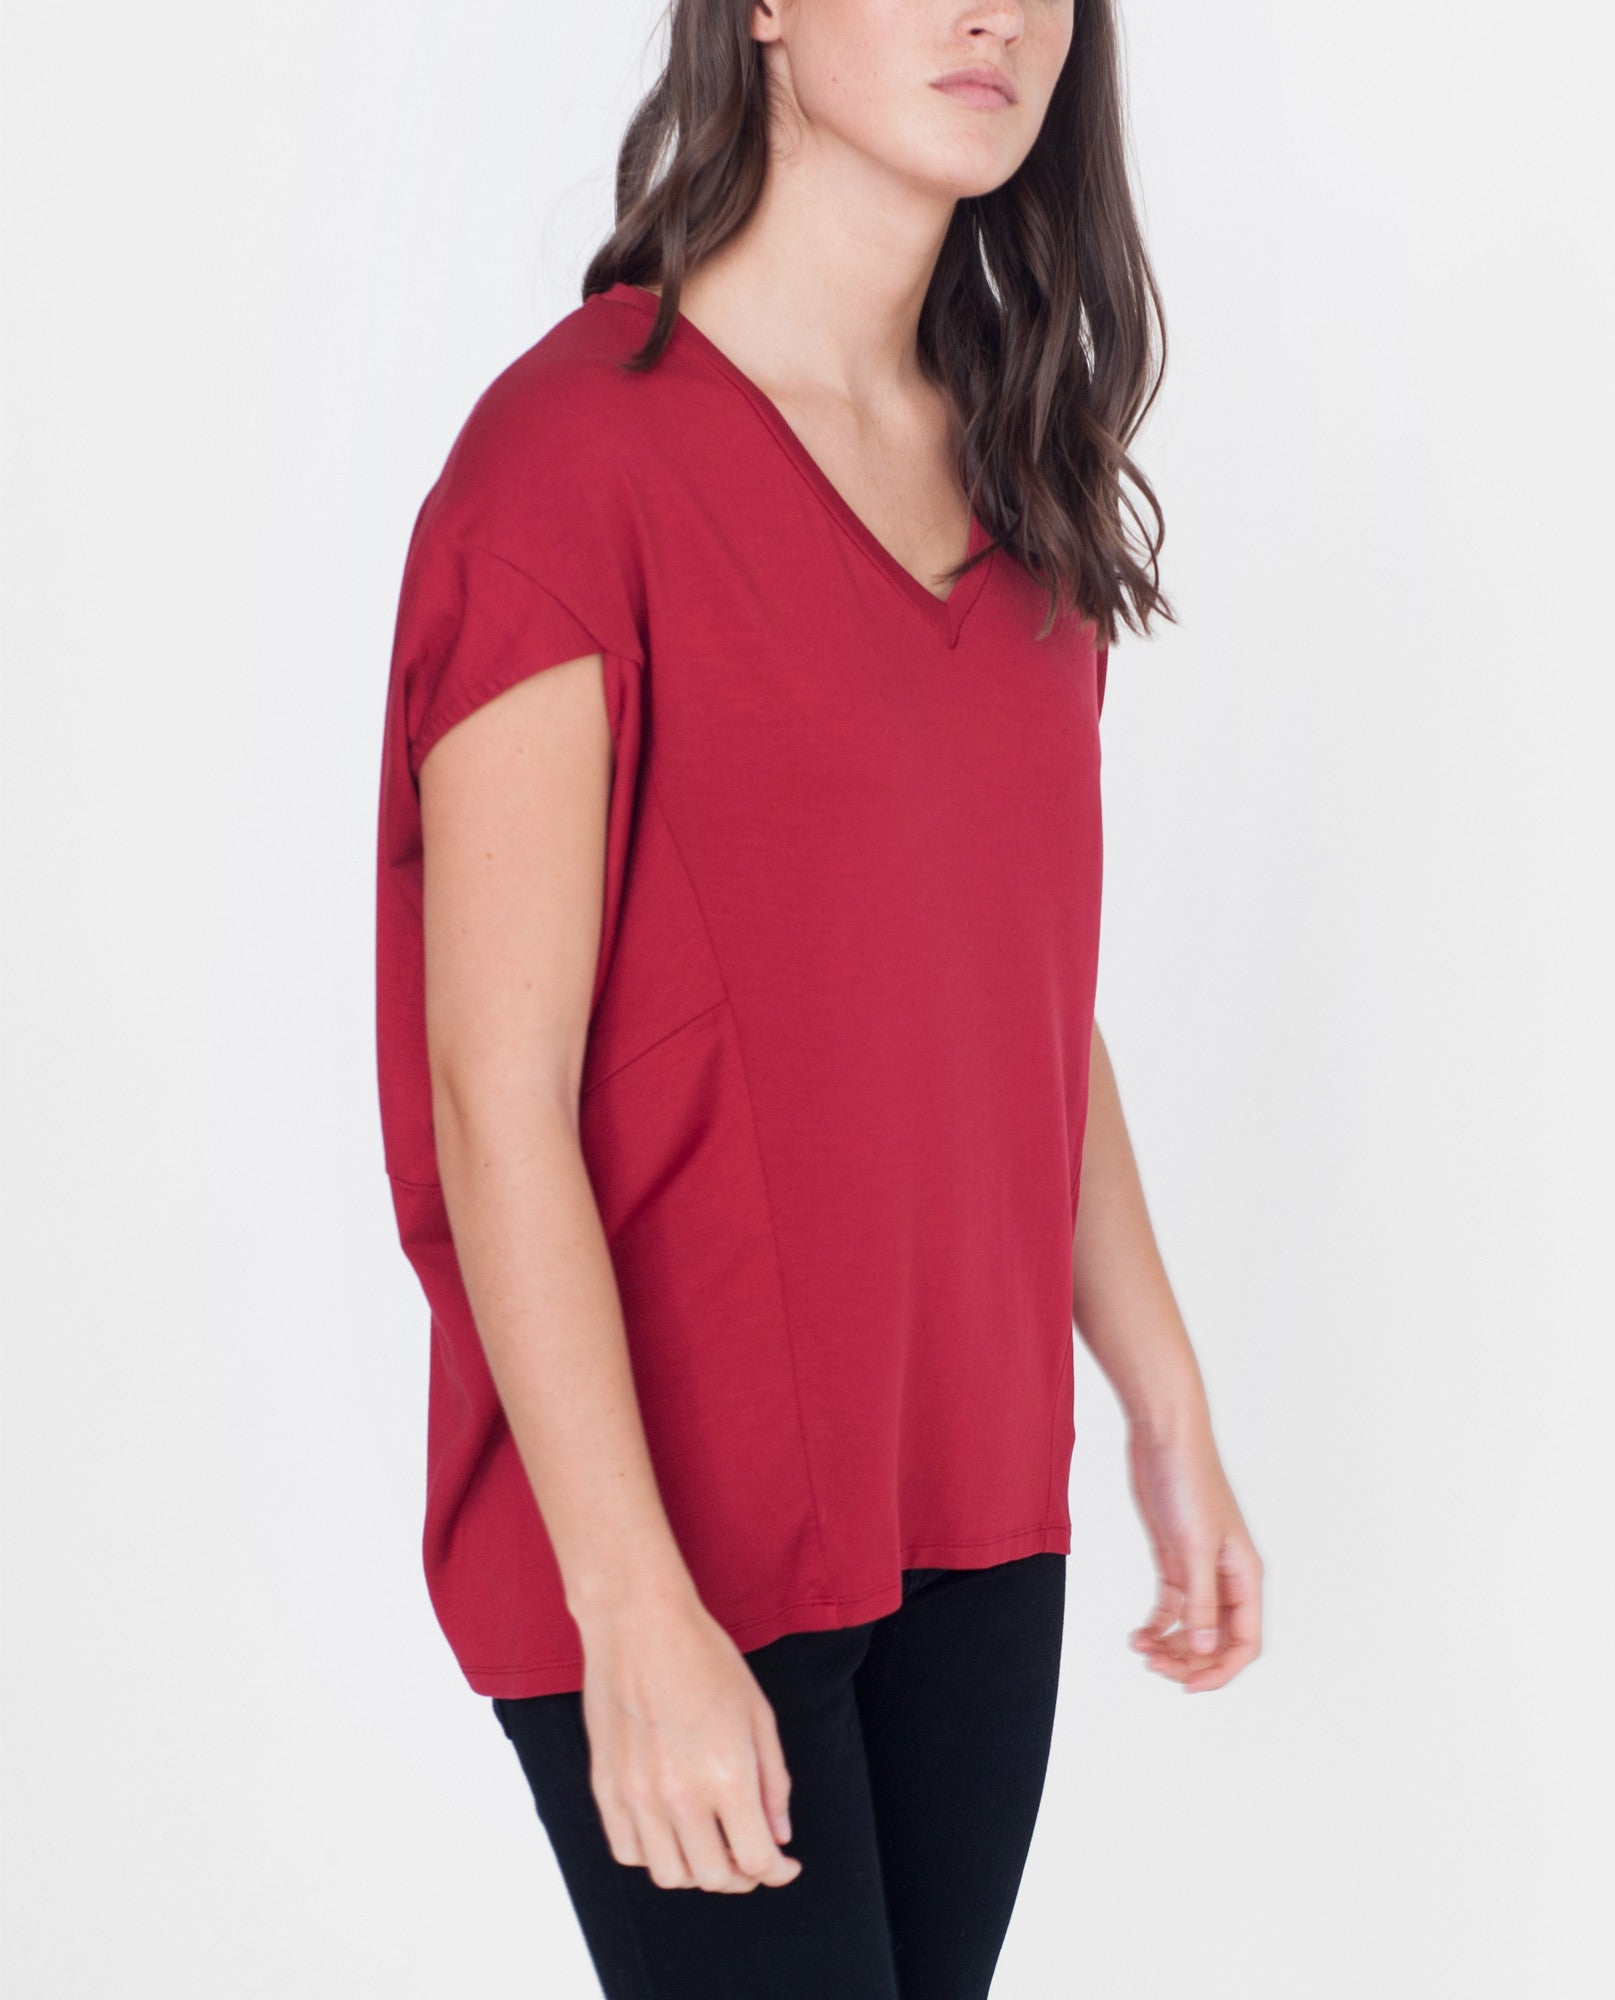 REID-LEE Lyocell Jersey Top In Red